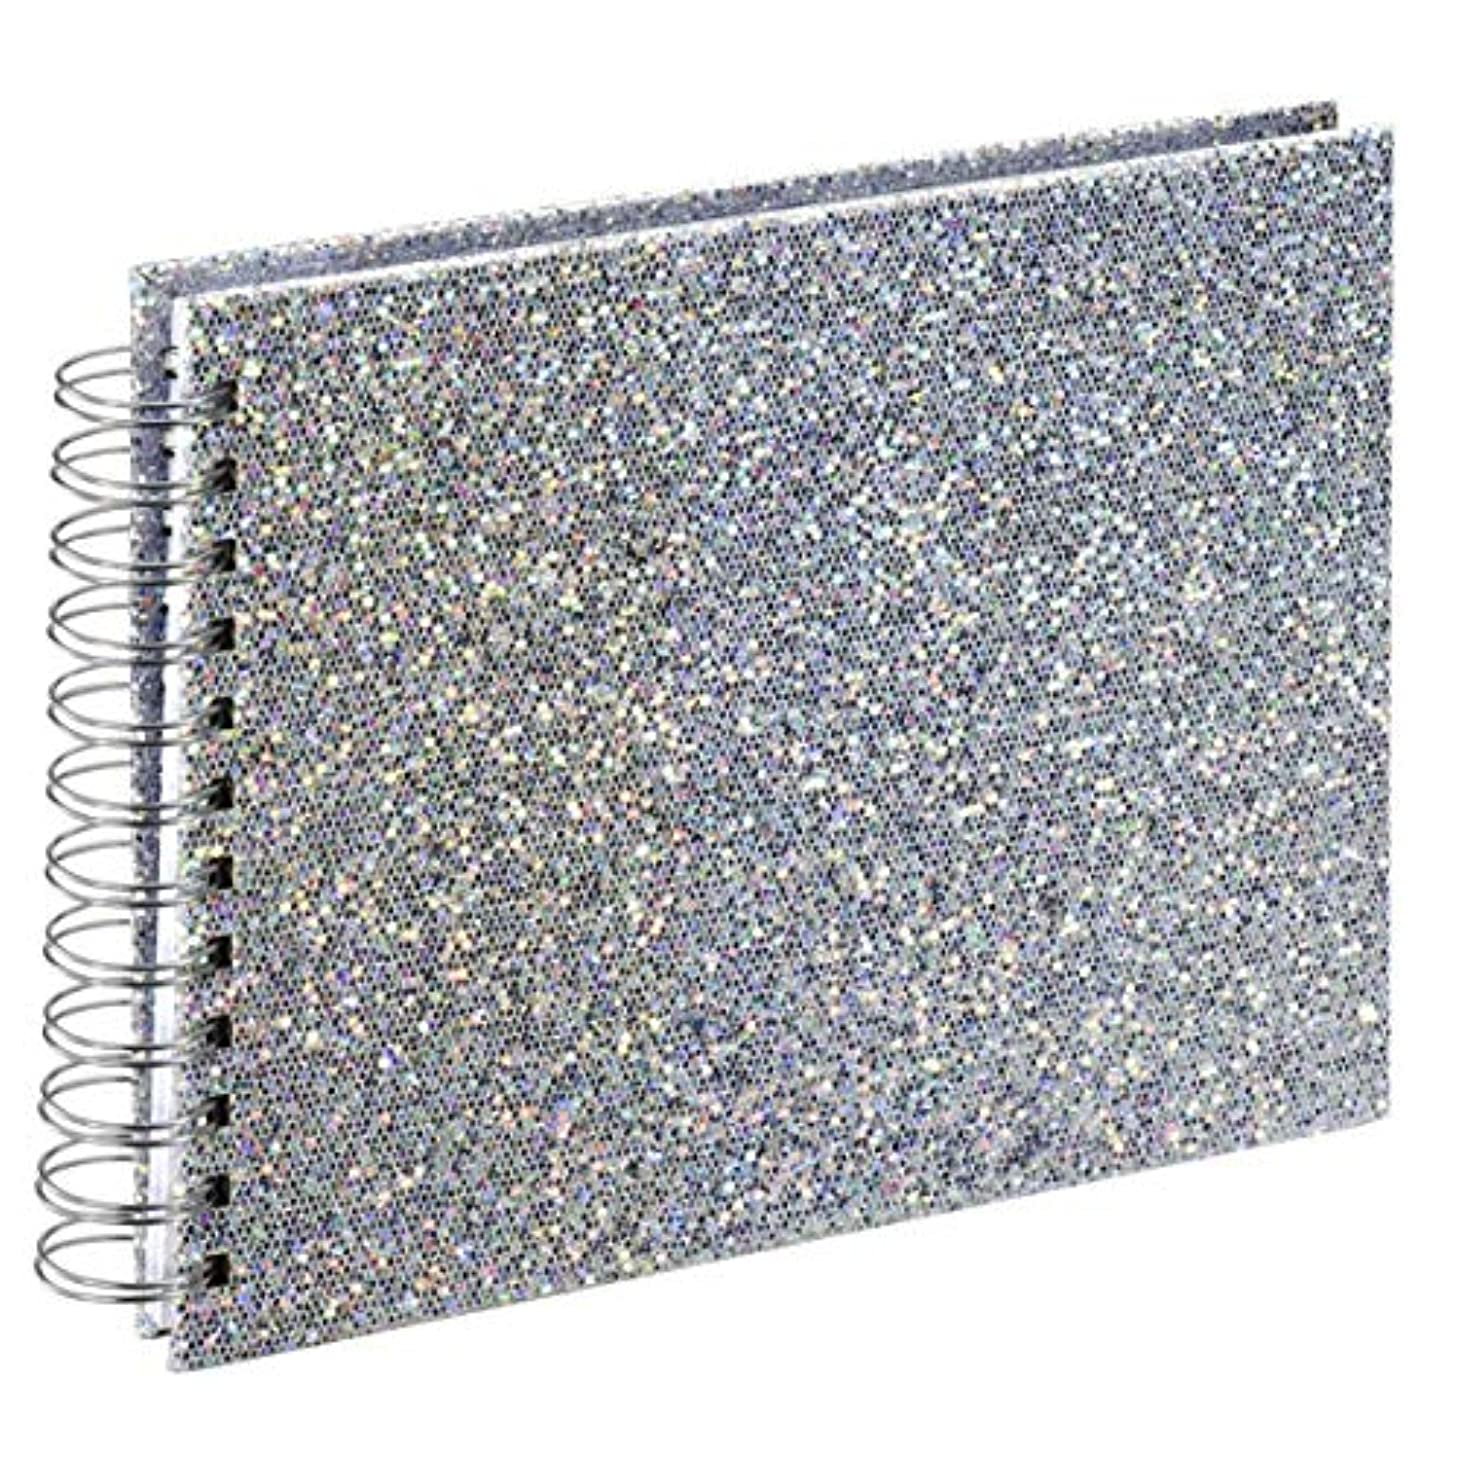 Glam Spiral Album 24 x 17 cm 50 Pages White Silver